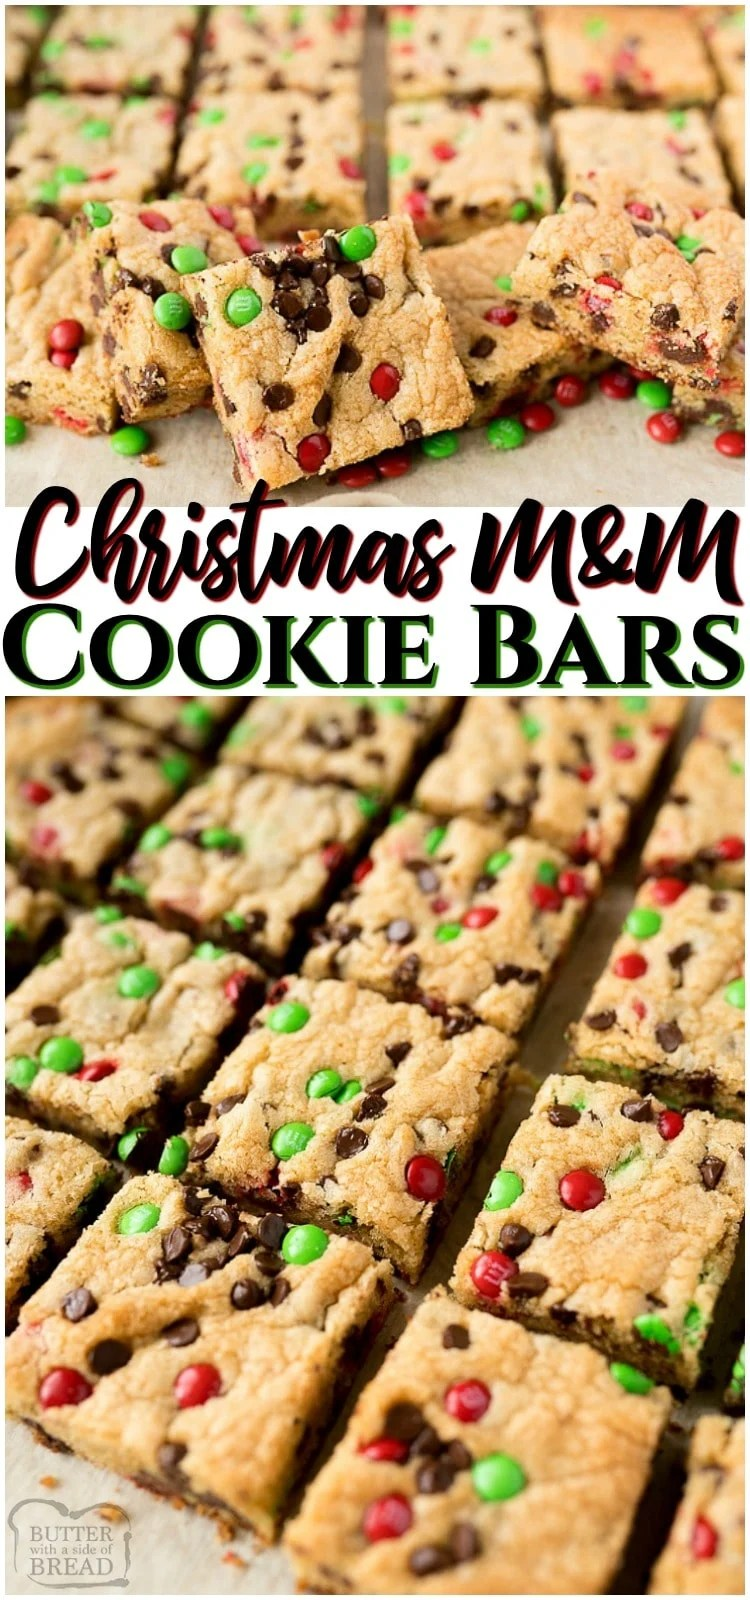 Christmas M&M Cookie Bars are a soft and tender chocolate chip cookie bar with festive green and red mini M&M's included! The soft and chewy Christmas cookie bar will be the star of the party!